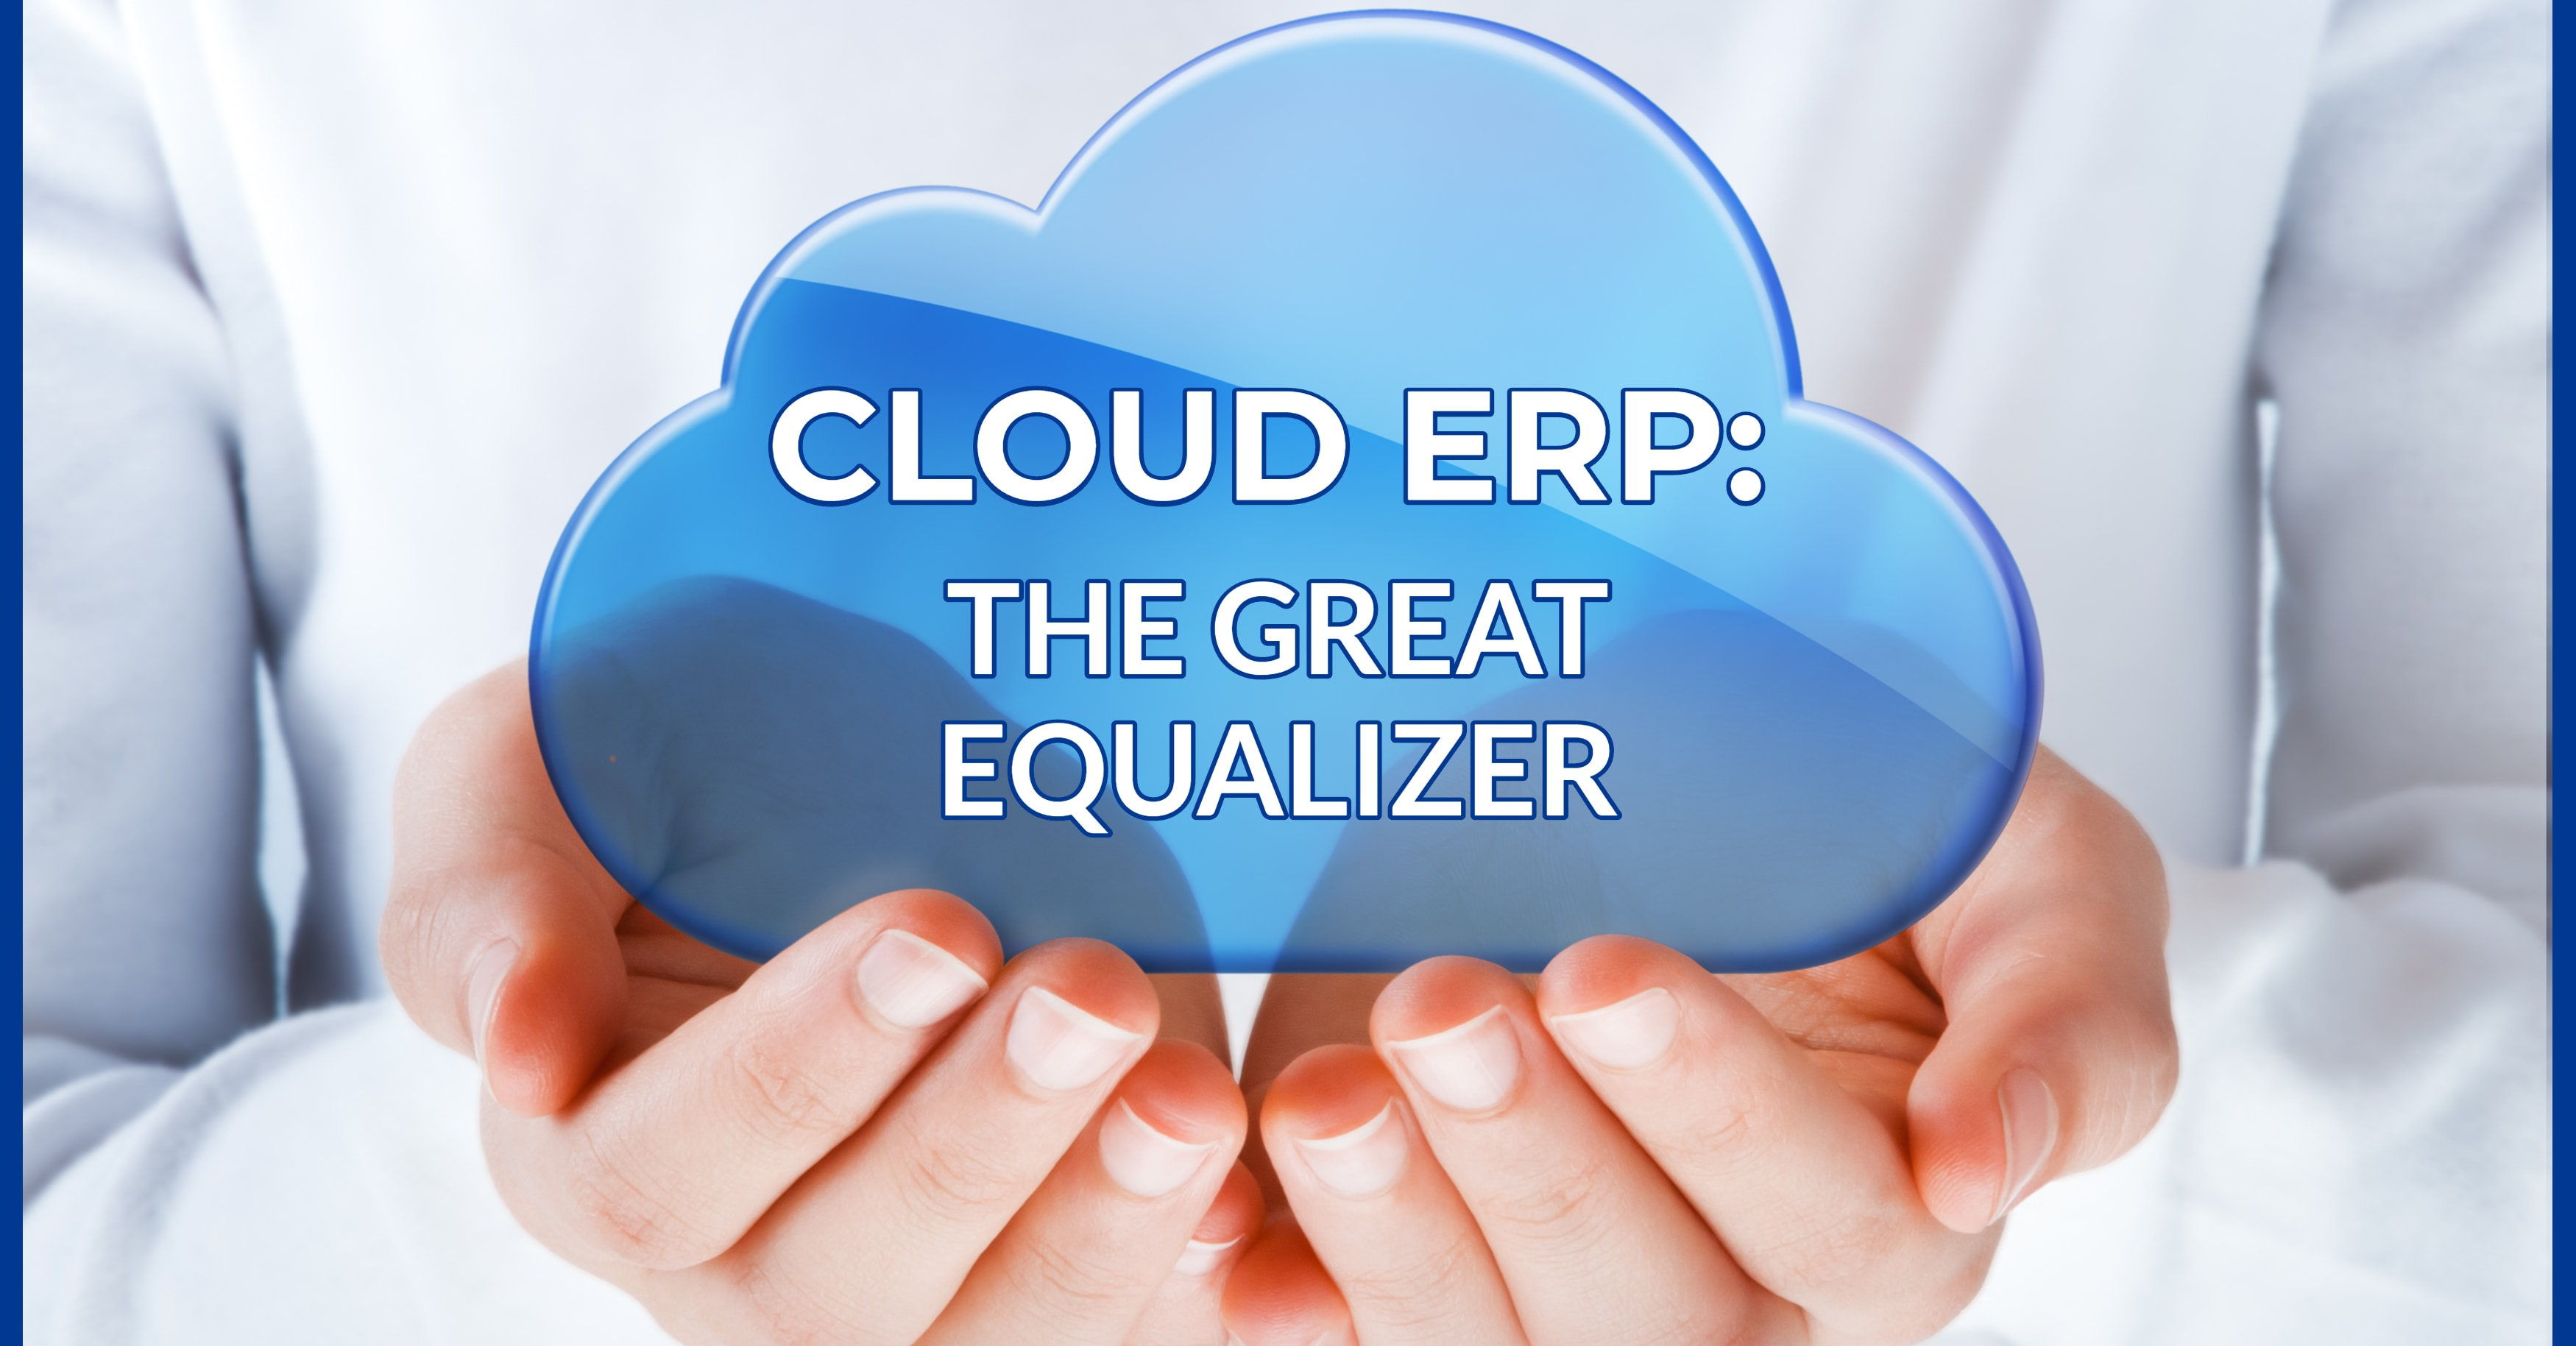 Cloud ERP: The Great Equalizer